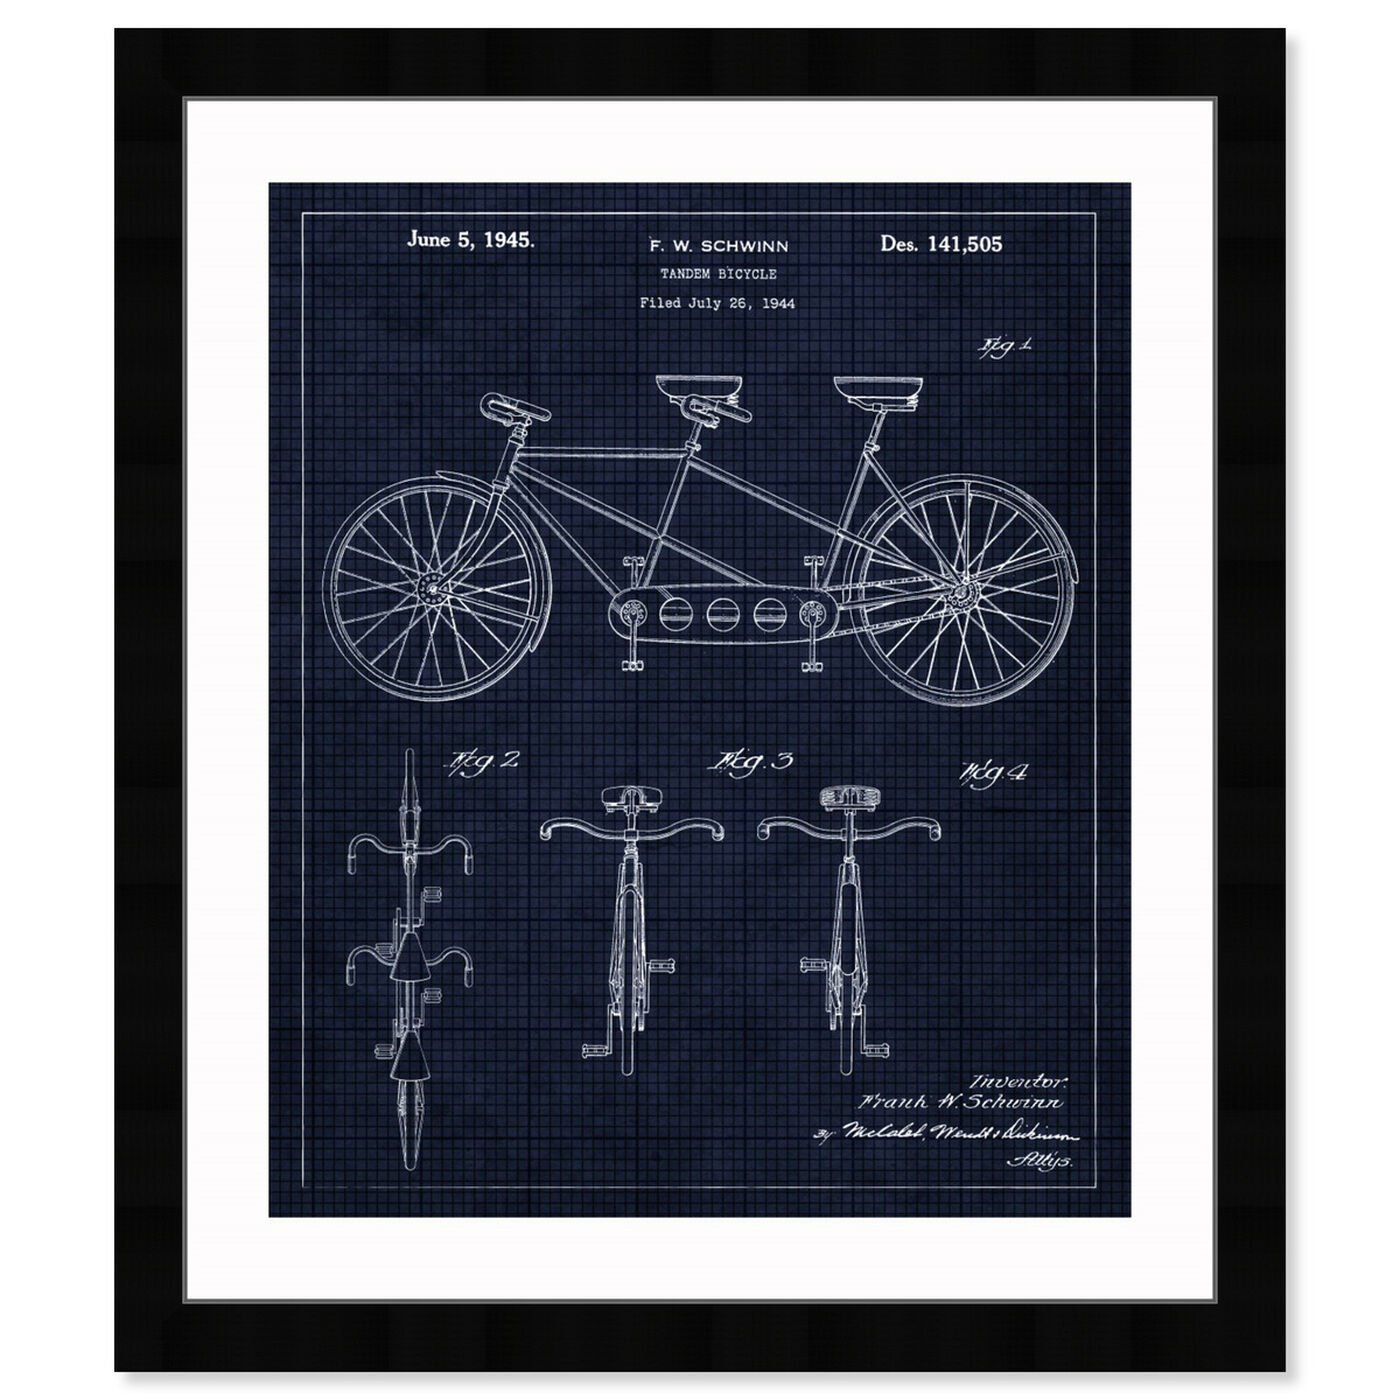 Front view of Tandem Bicycle 1945 featuring transportation and bicycles art.